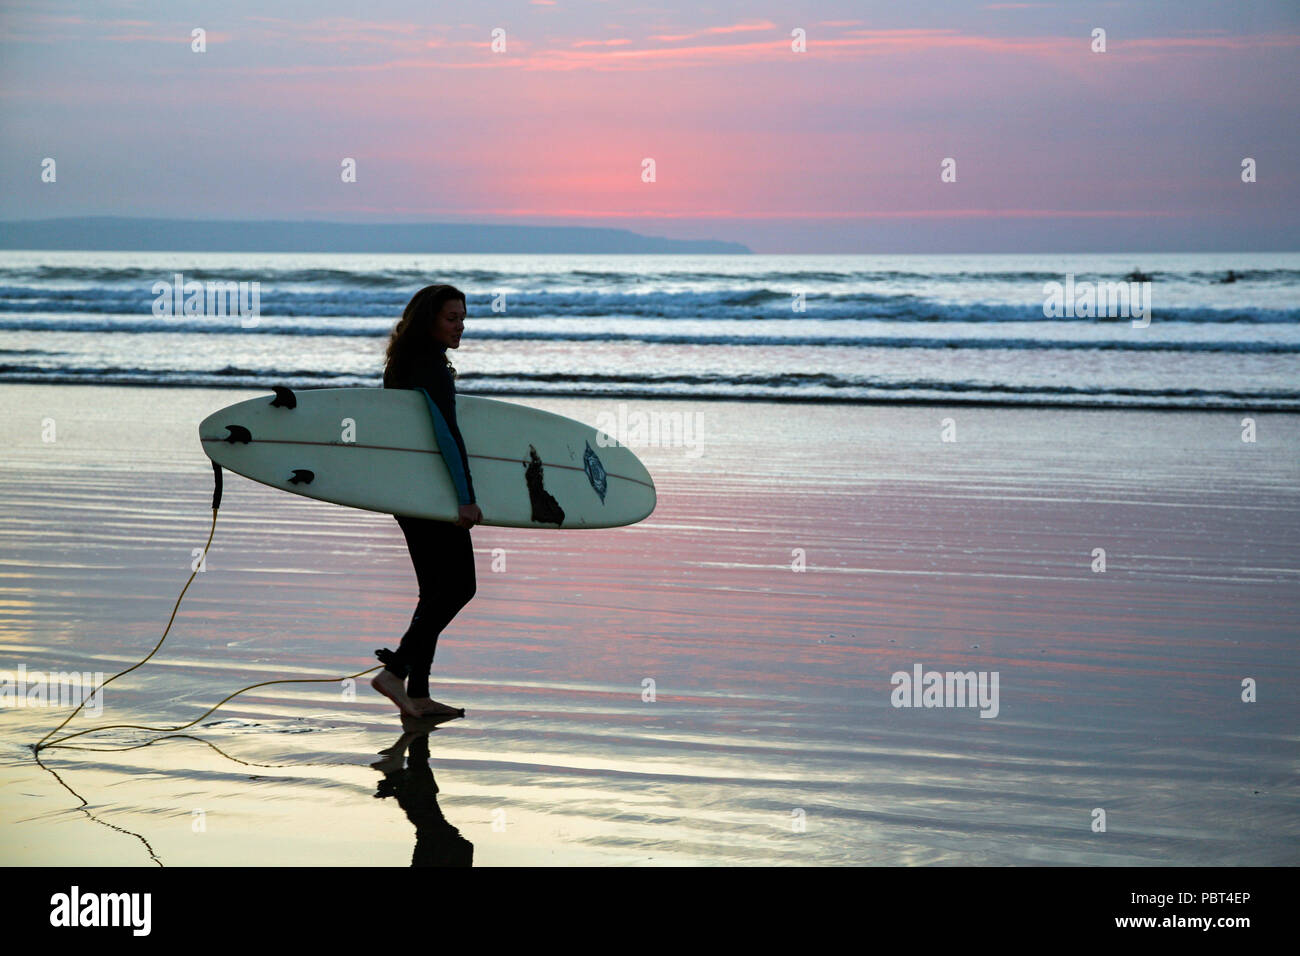 Young female surfer carrying her surfboard as she heads off in to the sea to catch a wave surfing at Westward Ho! beach, North Devon, England, Europe. Stock Photo